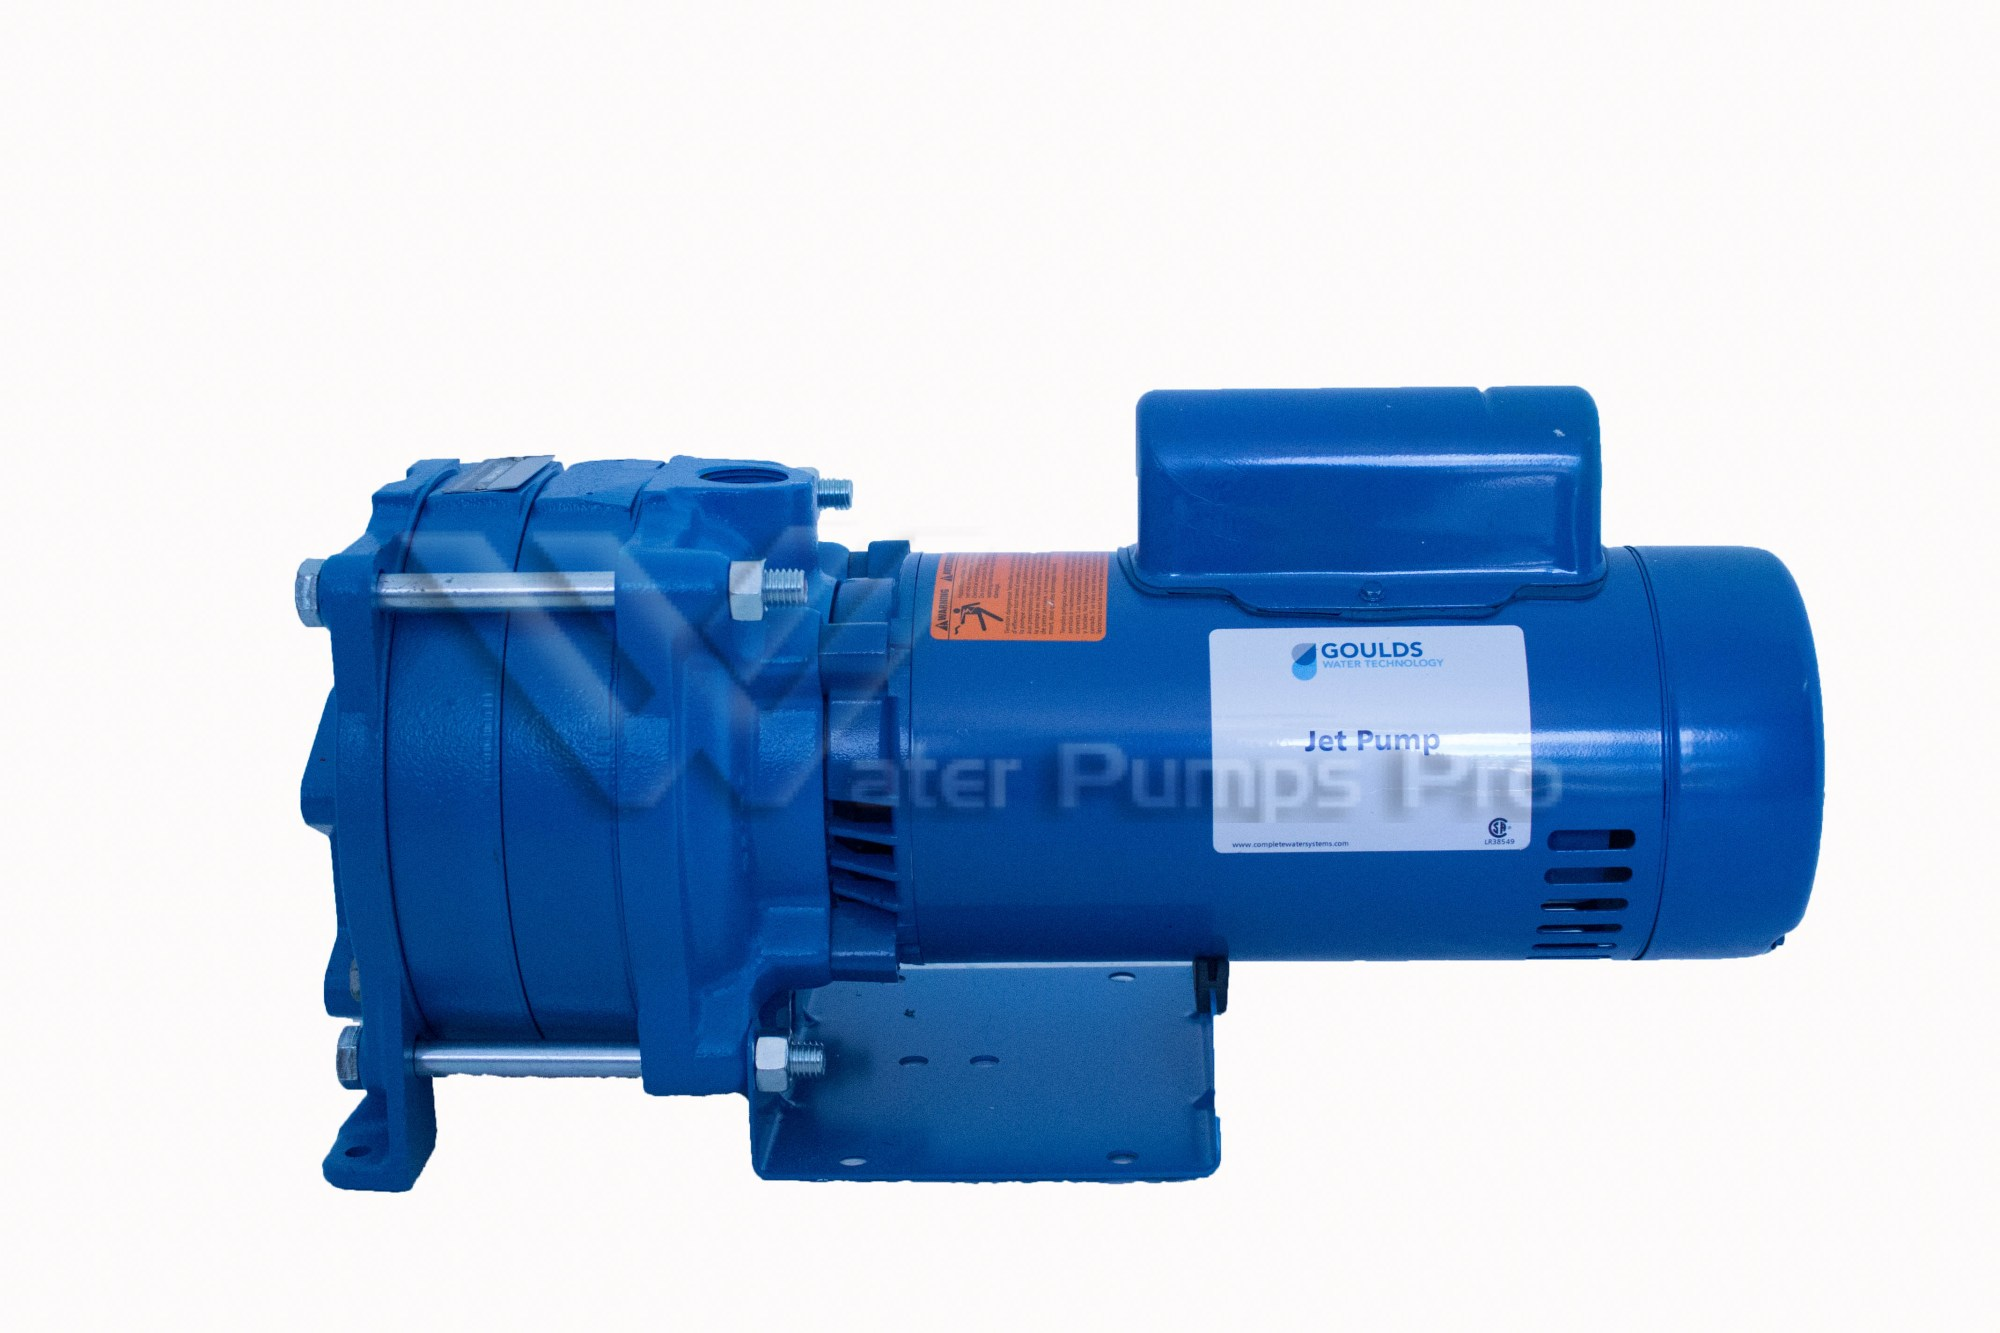 hight resolution of gould submersible well pump wiring diagram shallow well jet pump pressure switch wiring diagram jet pump